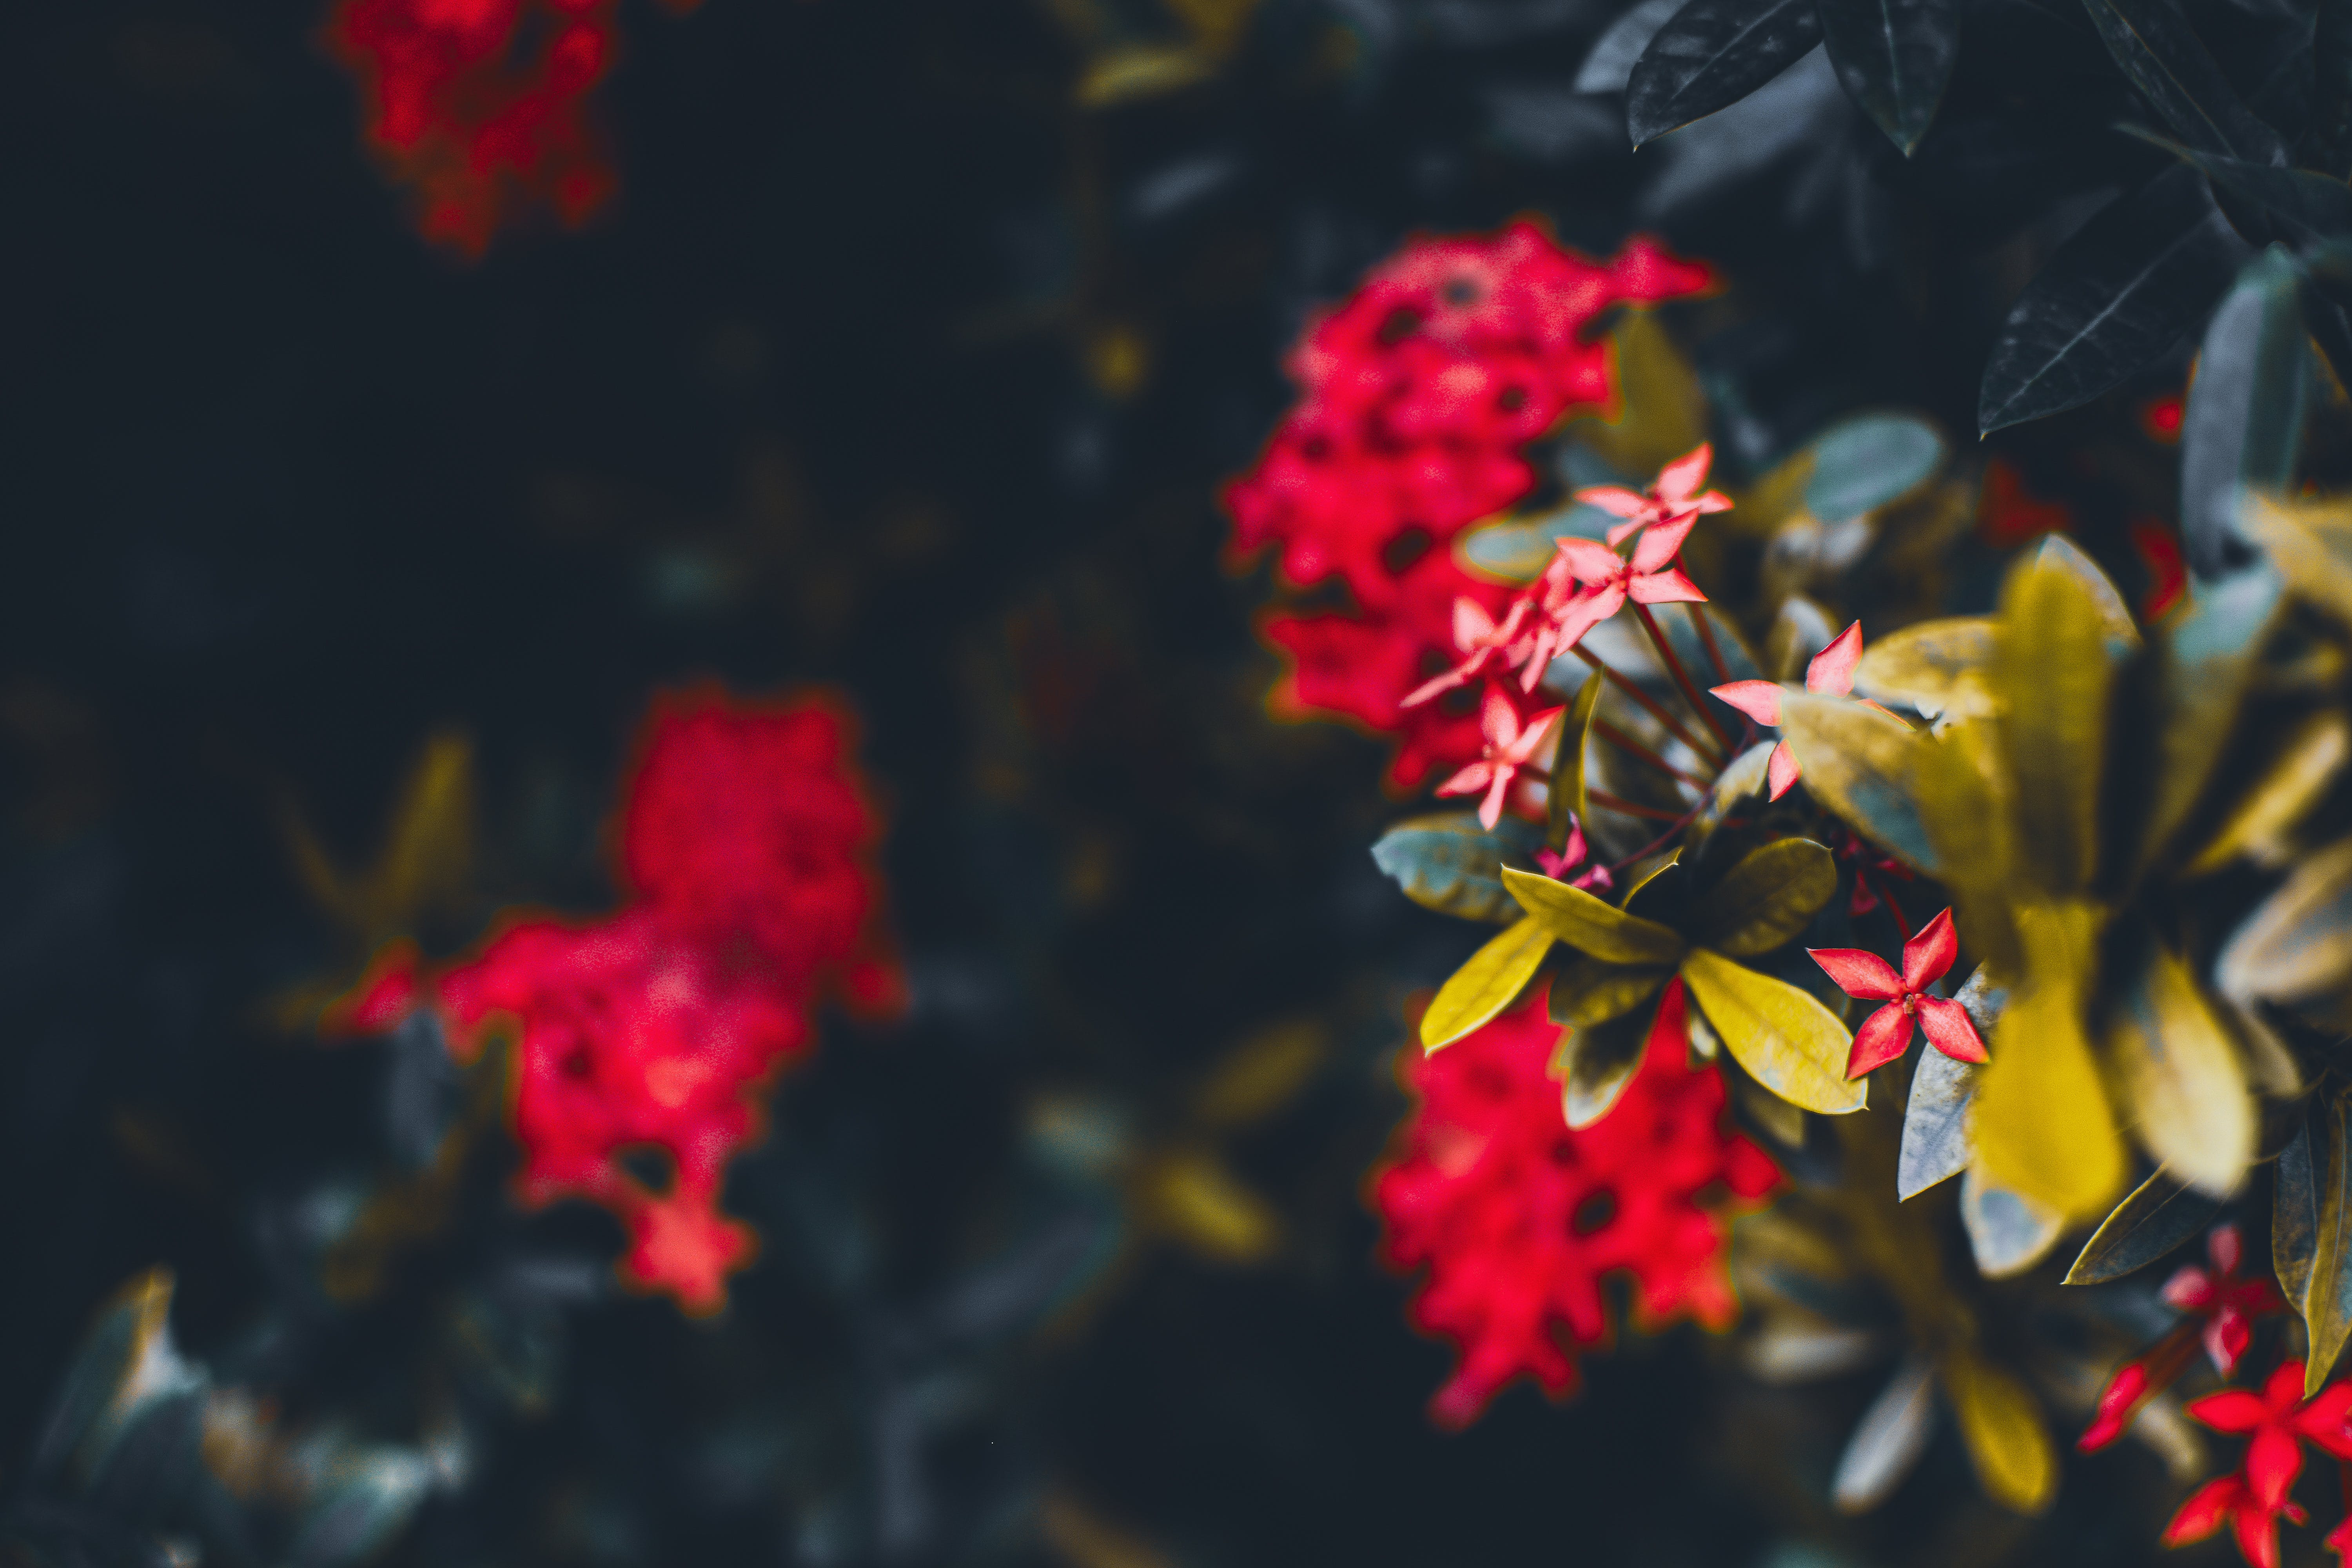 Close Up Photo of Red Ixora Plant